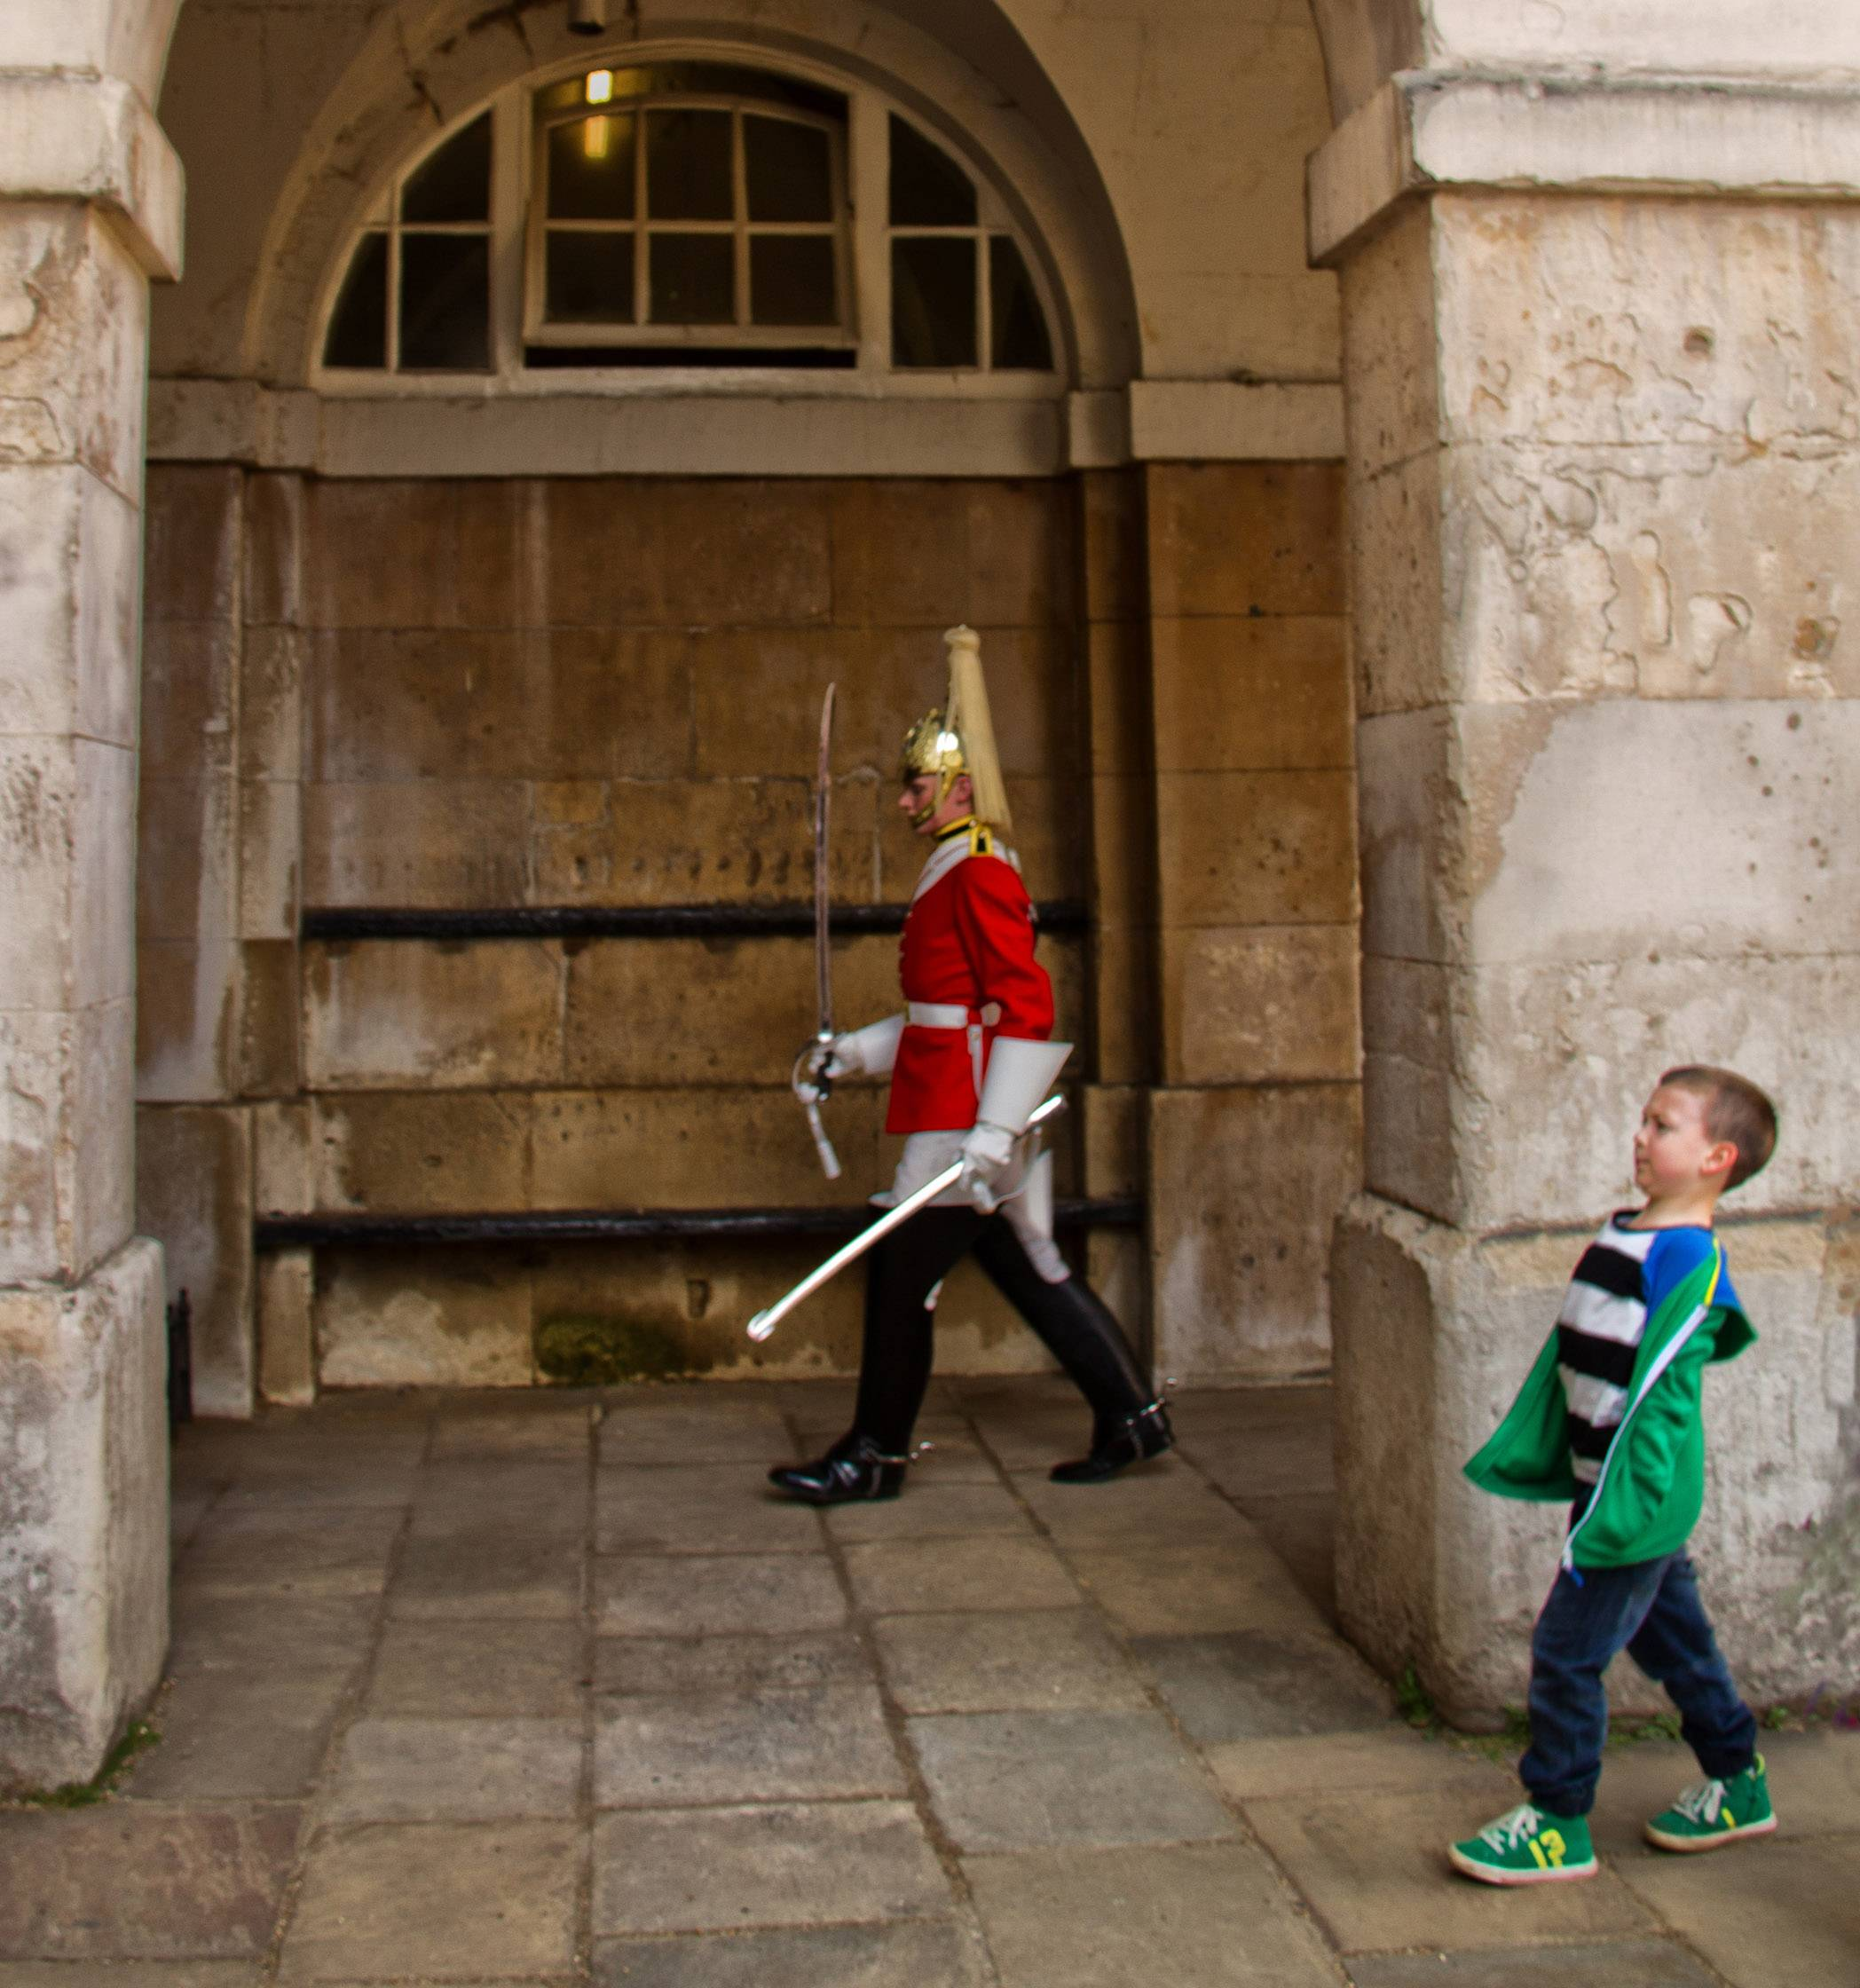 A young boy enjoys trying to march like the Queen's Guard at Buckingham Palace in the area adjacent to the palace in London.